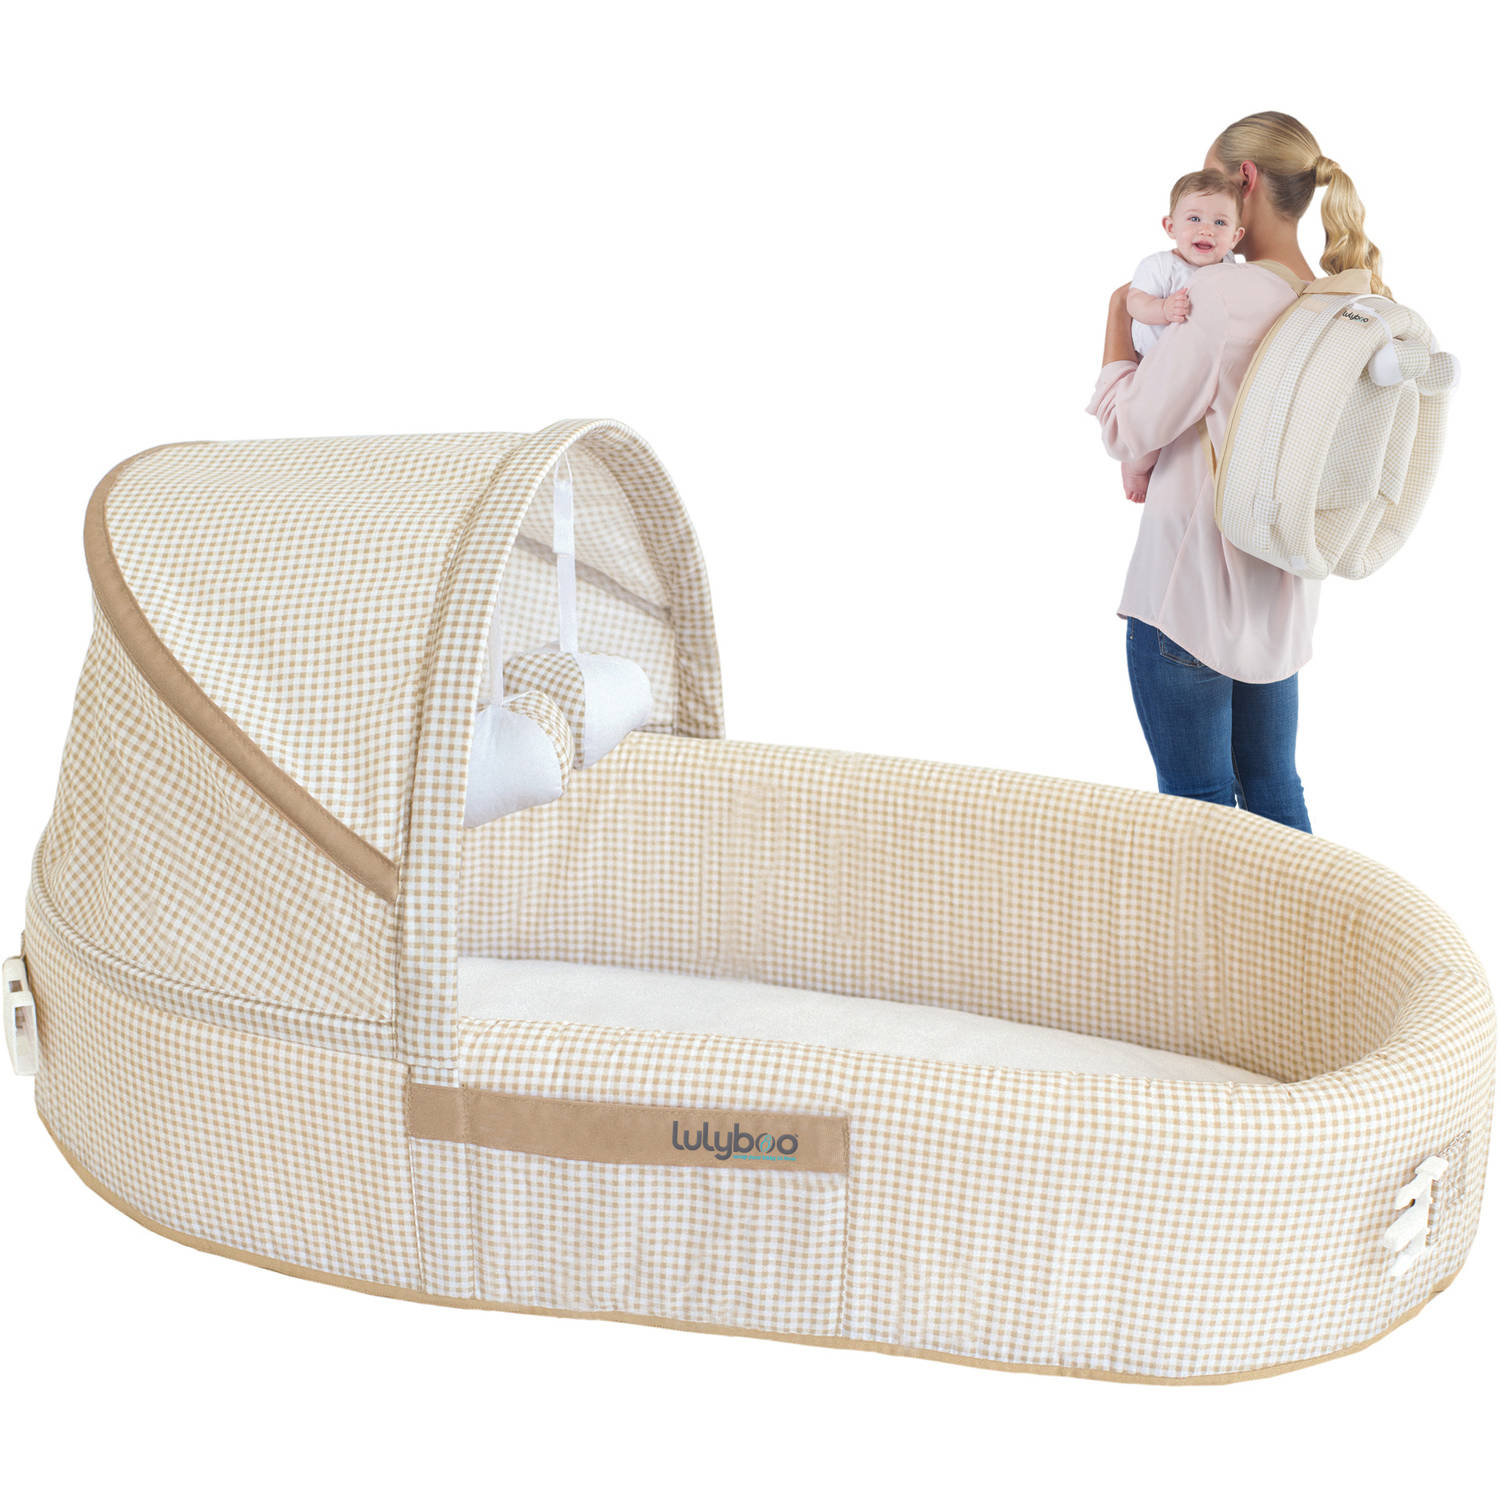 LulyBoo Baby Lounge To Go Travel Bed, Beige